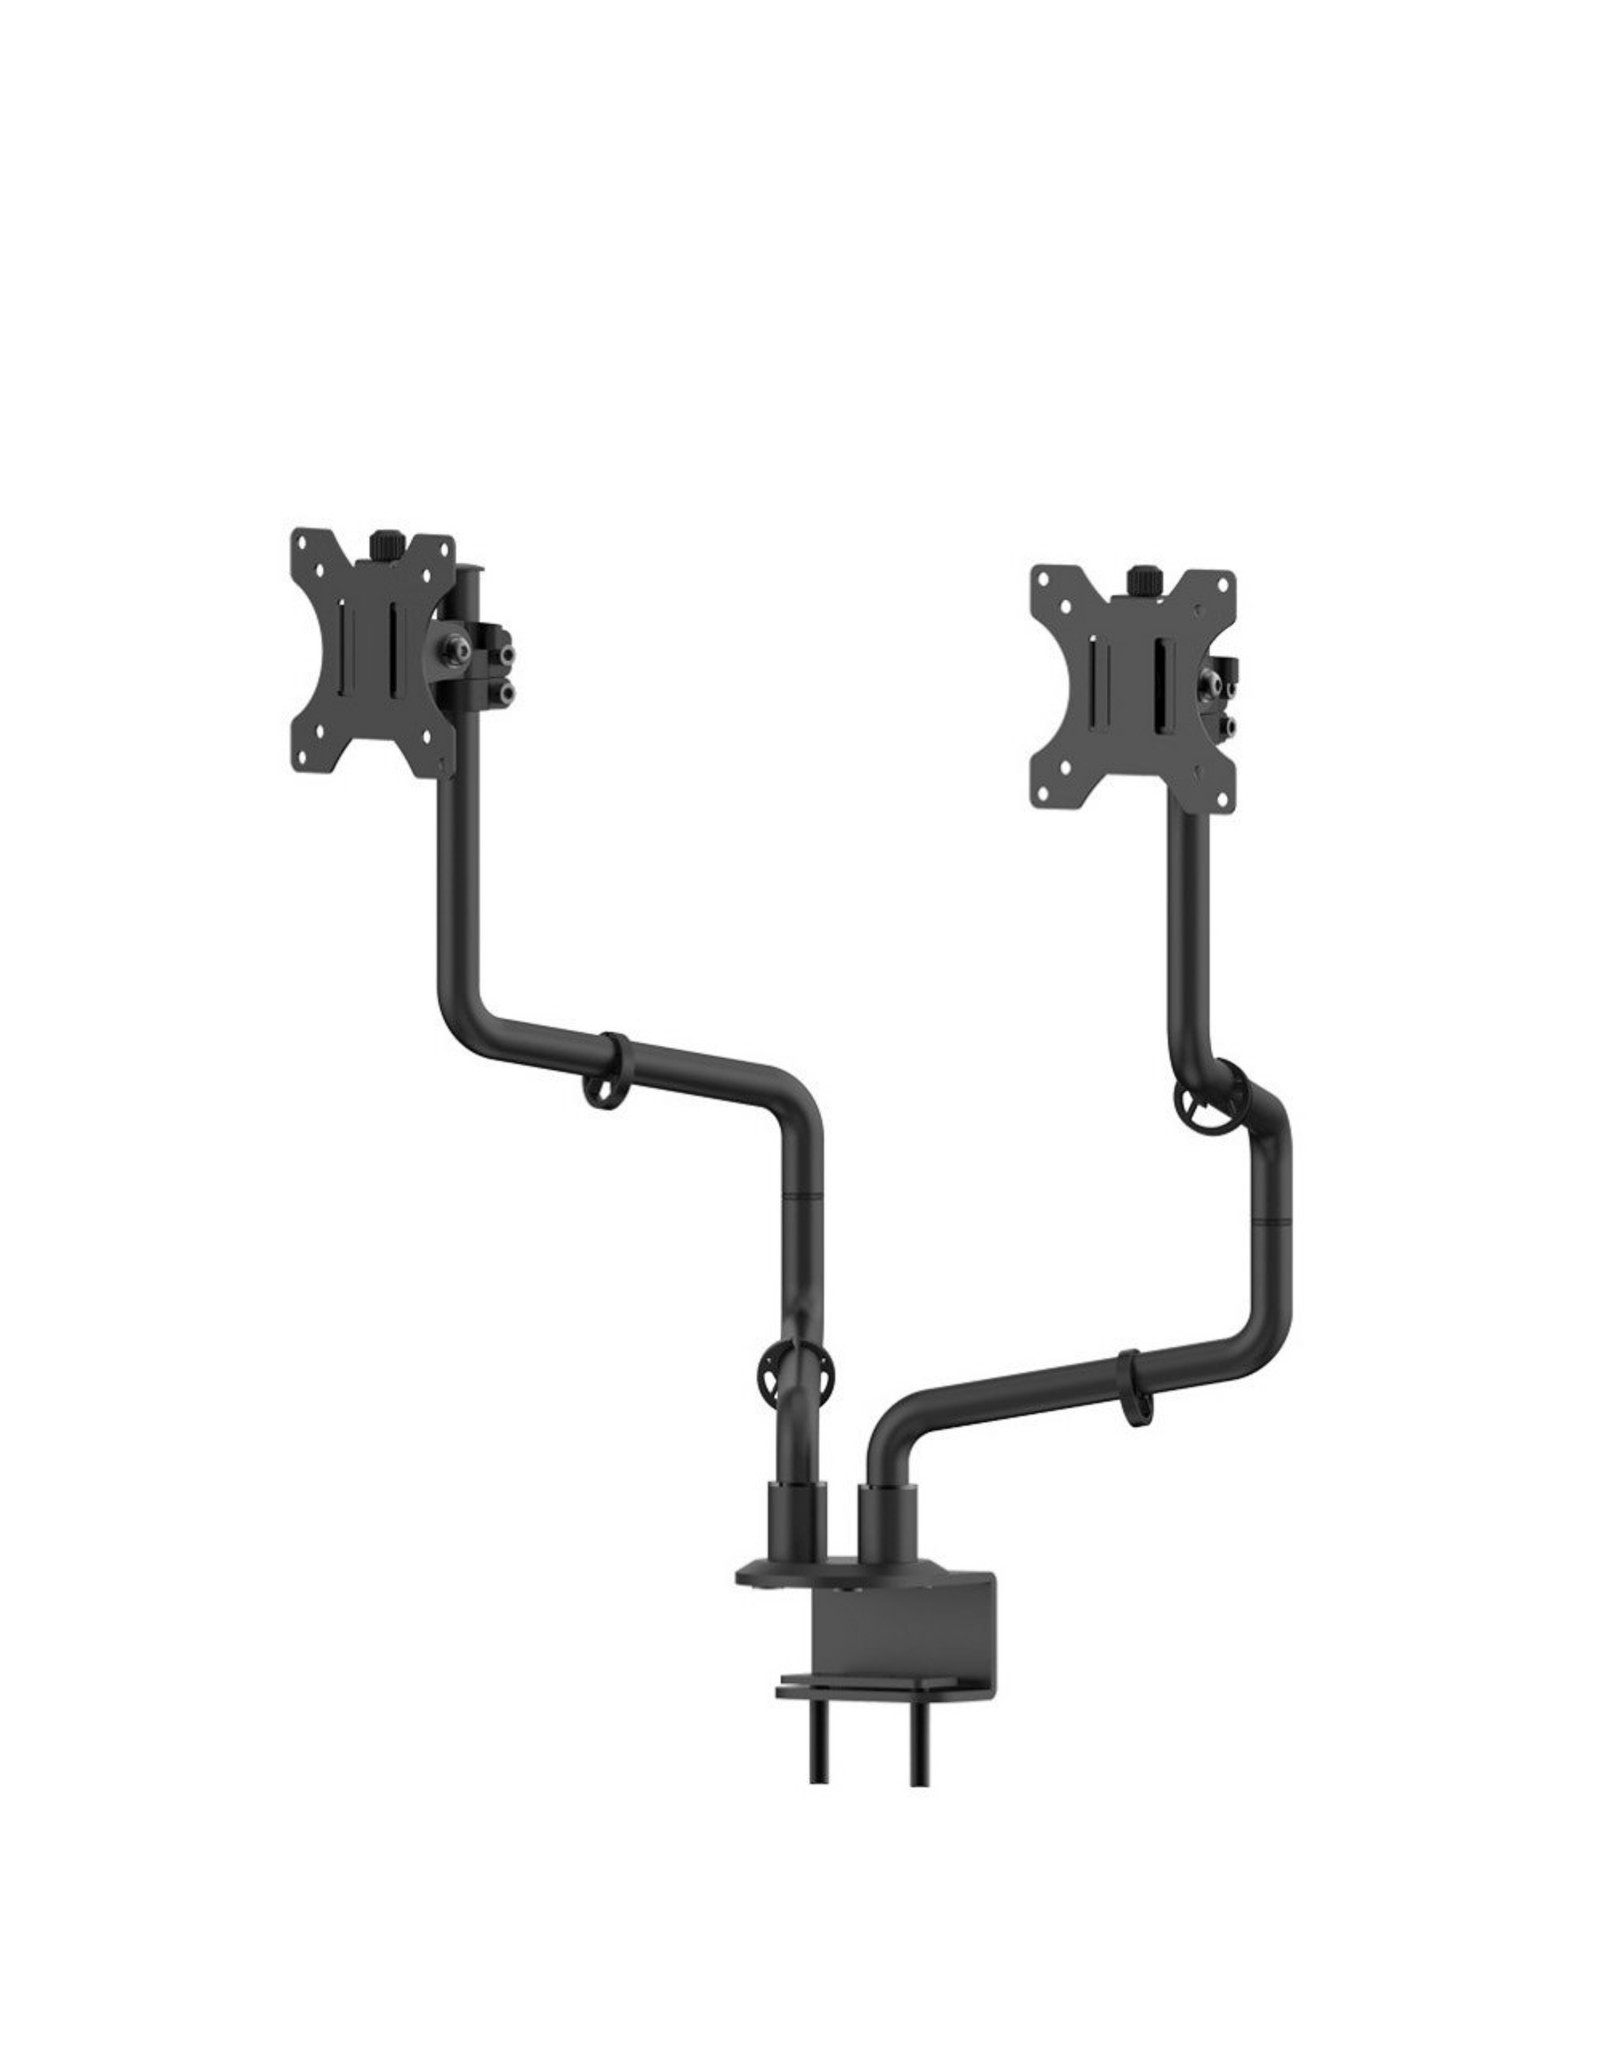 Newstar Monitor Arm steun for 2 monitors up to 30inch